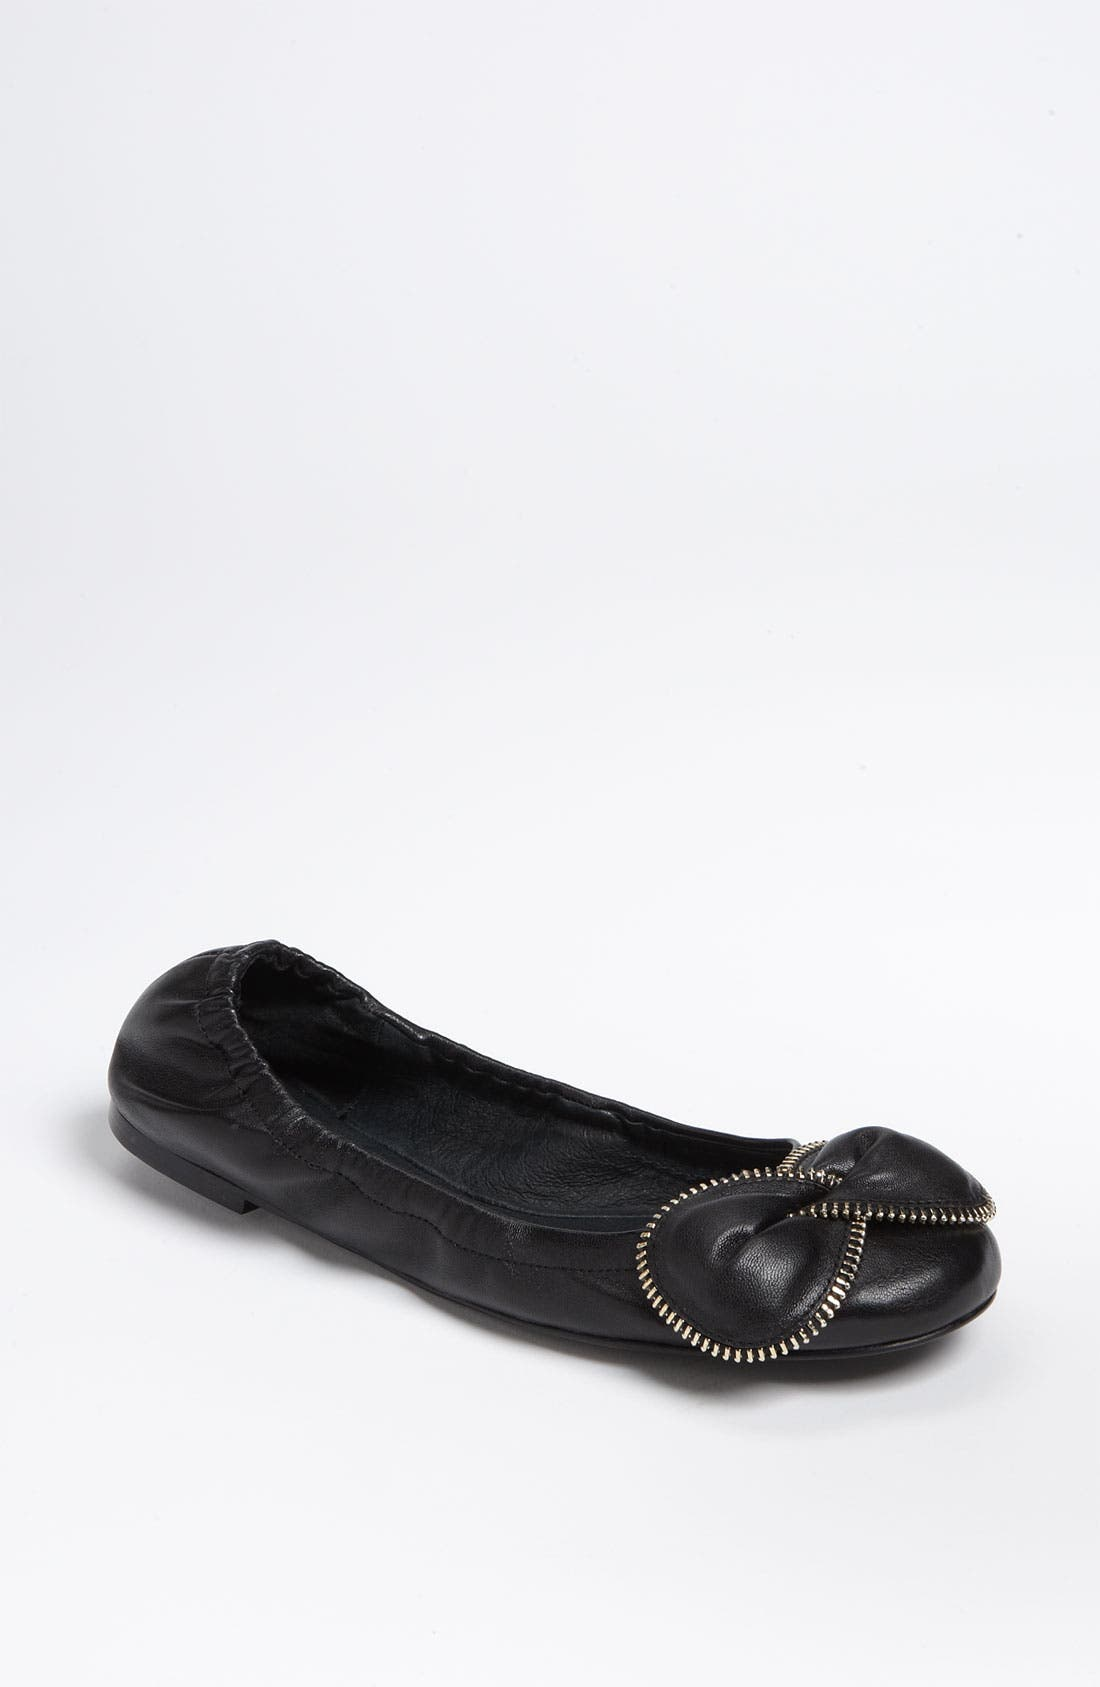 Main Image - See by Chloé Bow Flat